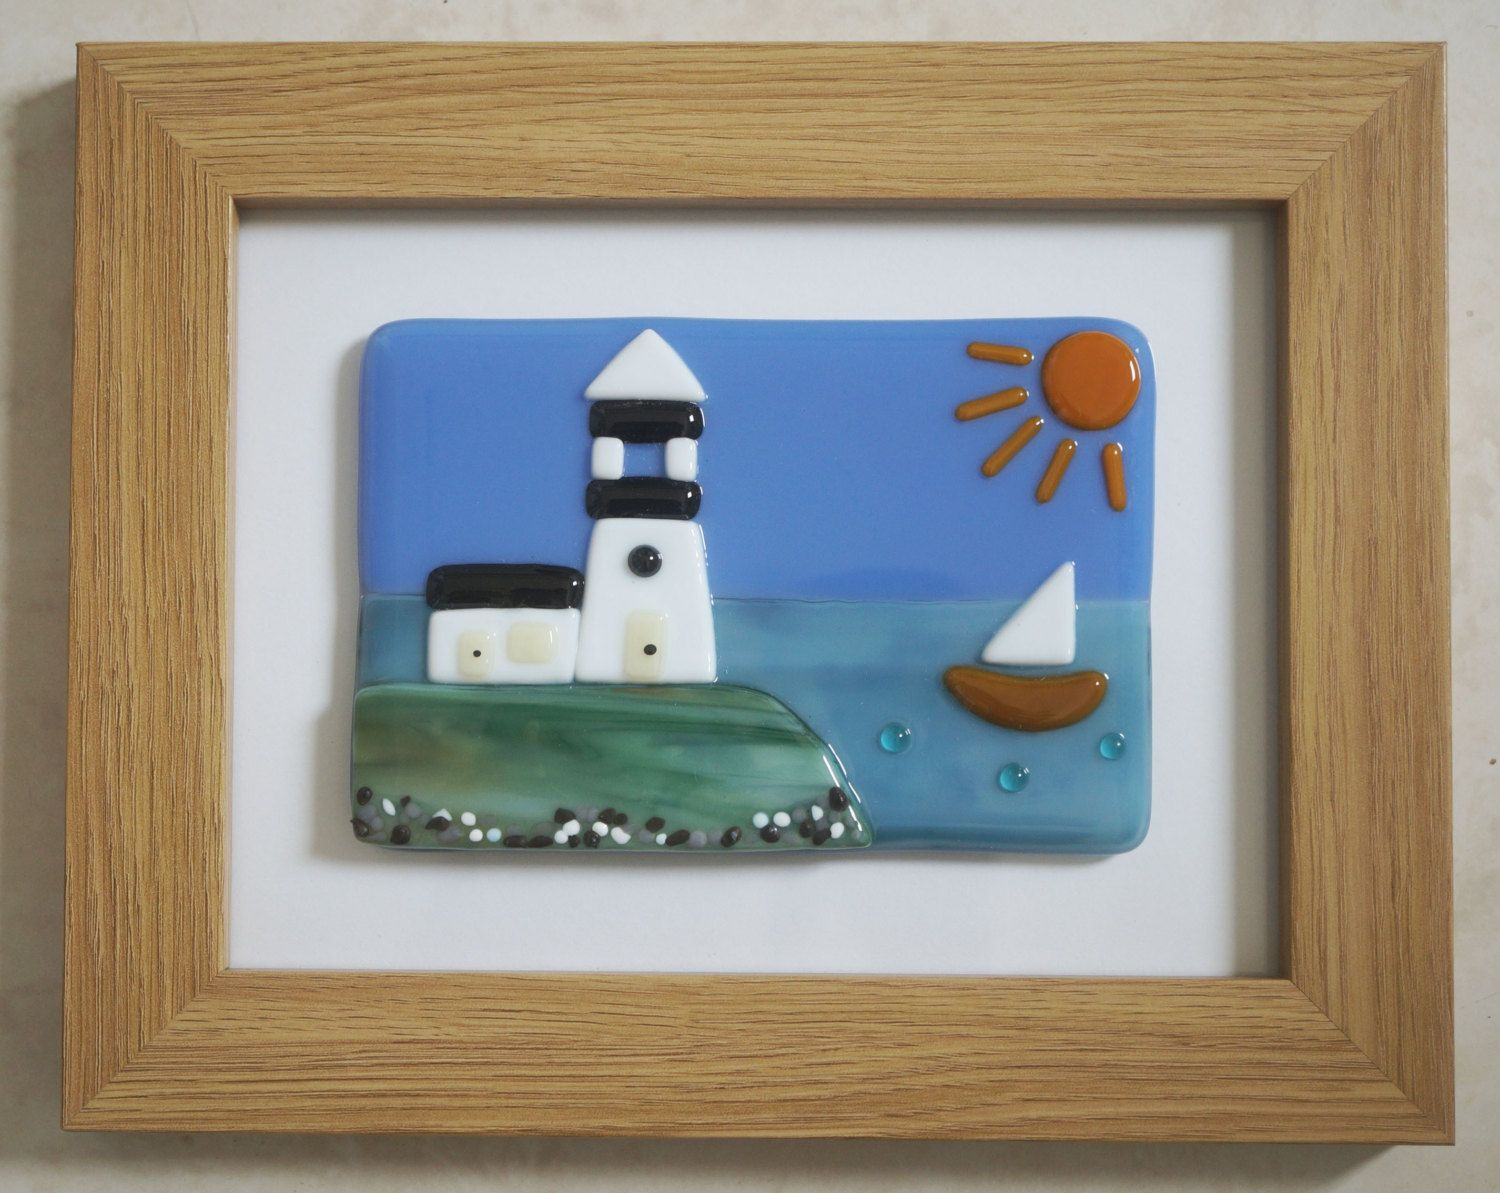 Fused Glass Wall Art Framed Picture Lighthouse By The By Jewlls4u Fused Glass Wall Art Glass Wall Art Framed Wall Art